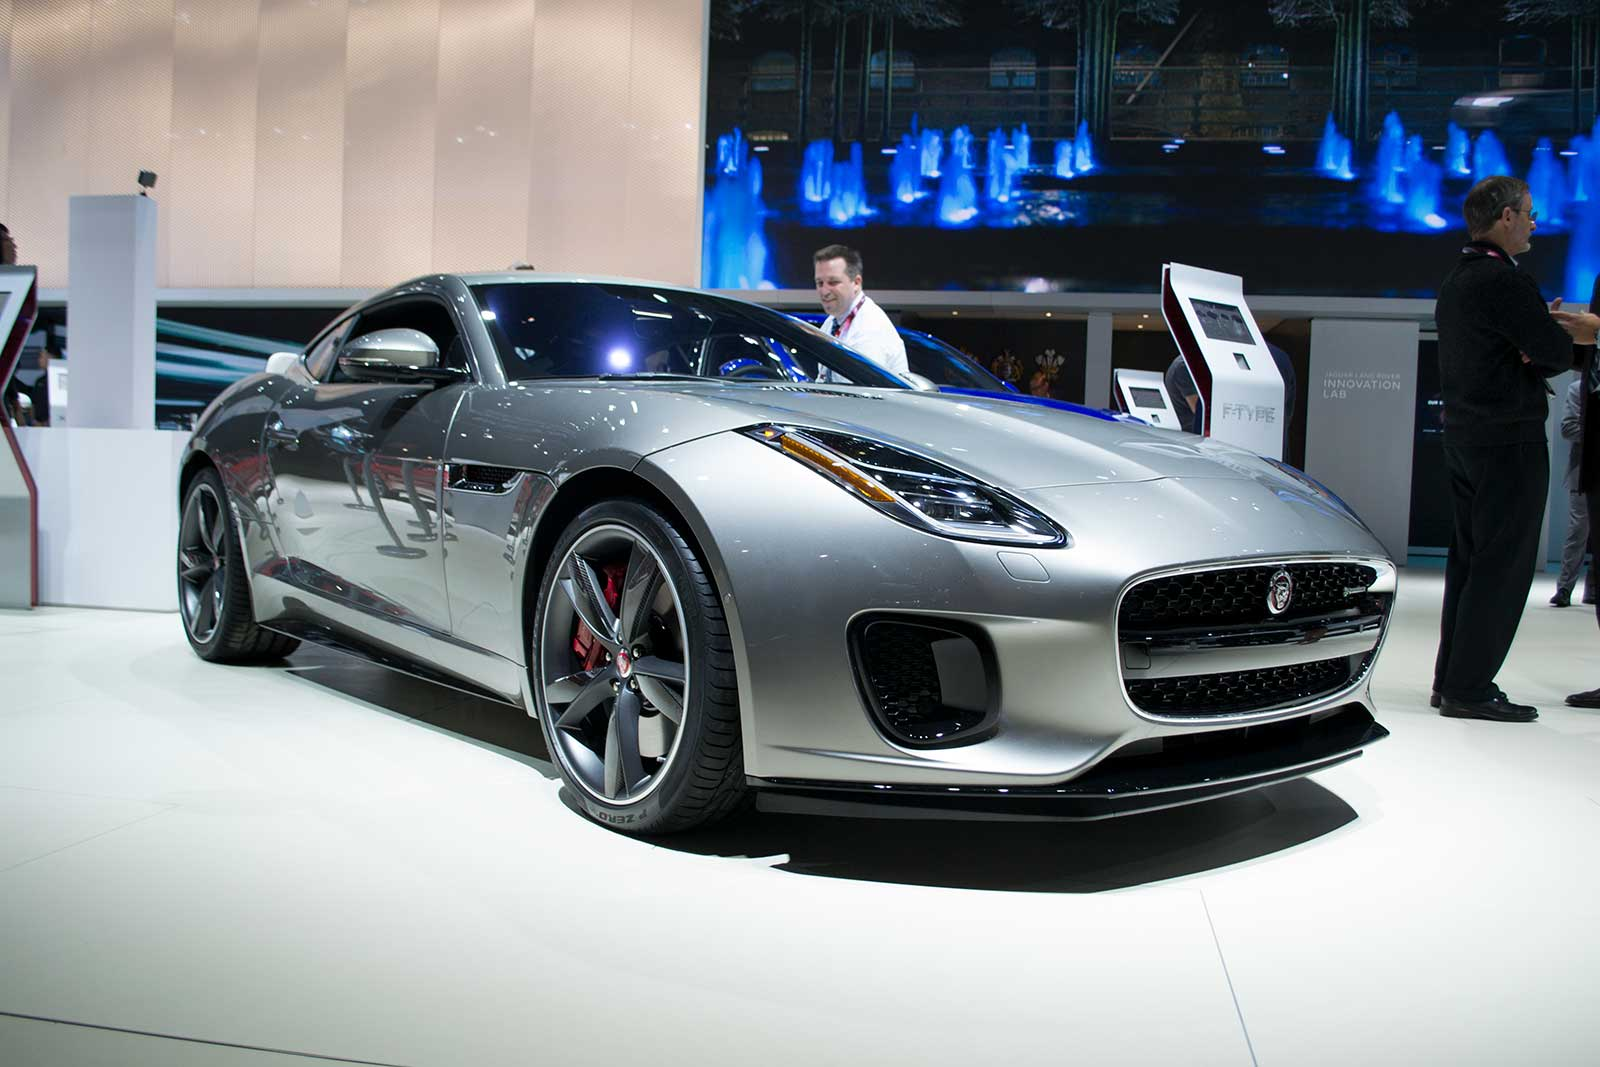 2018 jaguar f type gets new base 4 cylinder engine cheaper entry price news. Black Bedroom Furniture Sets. Home Design Ideas